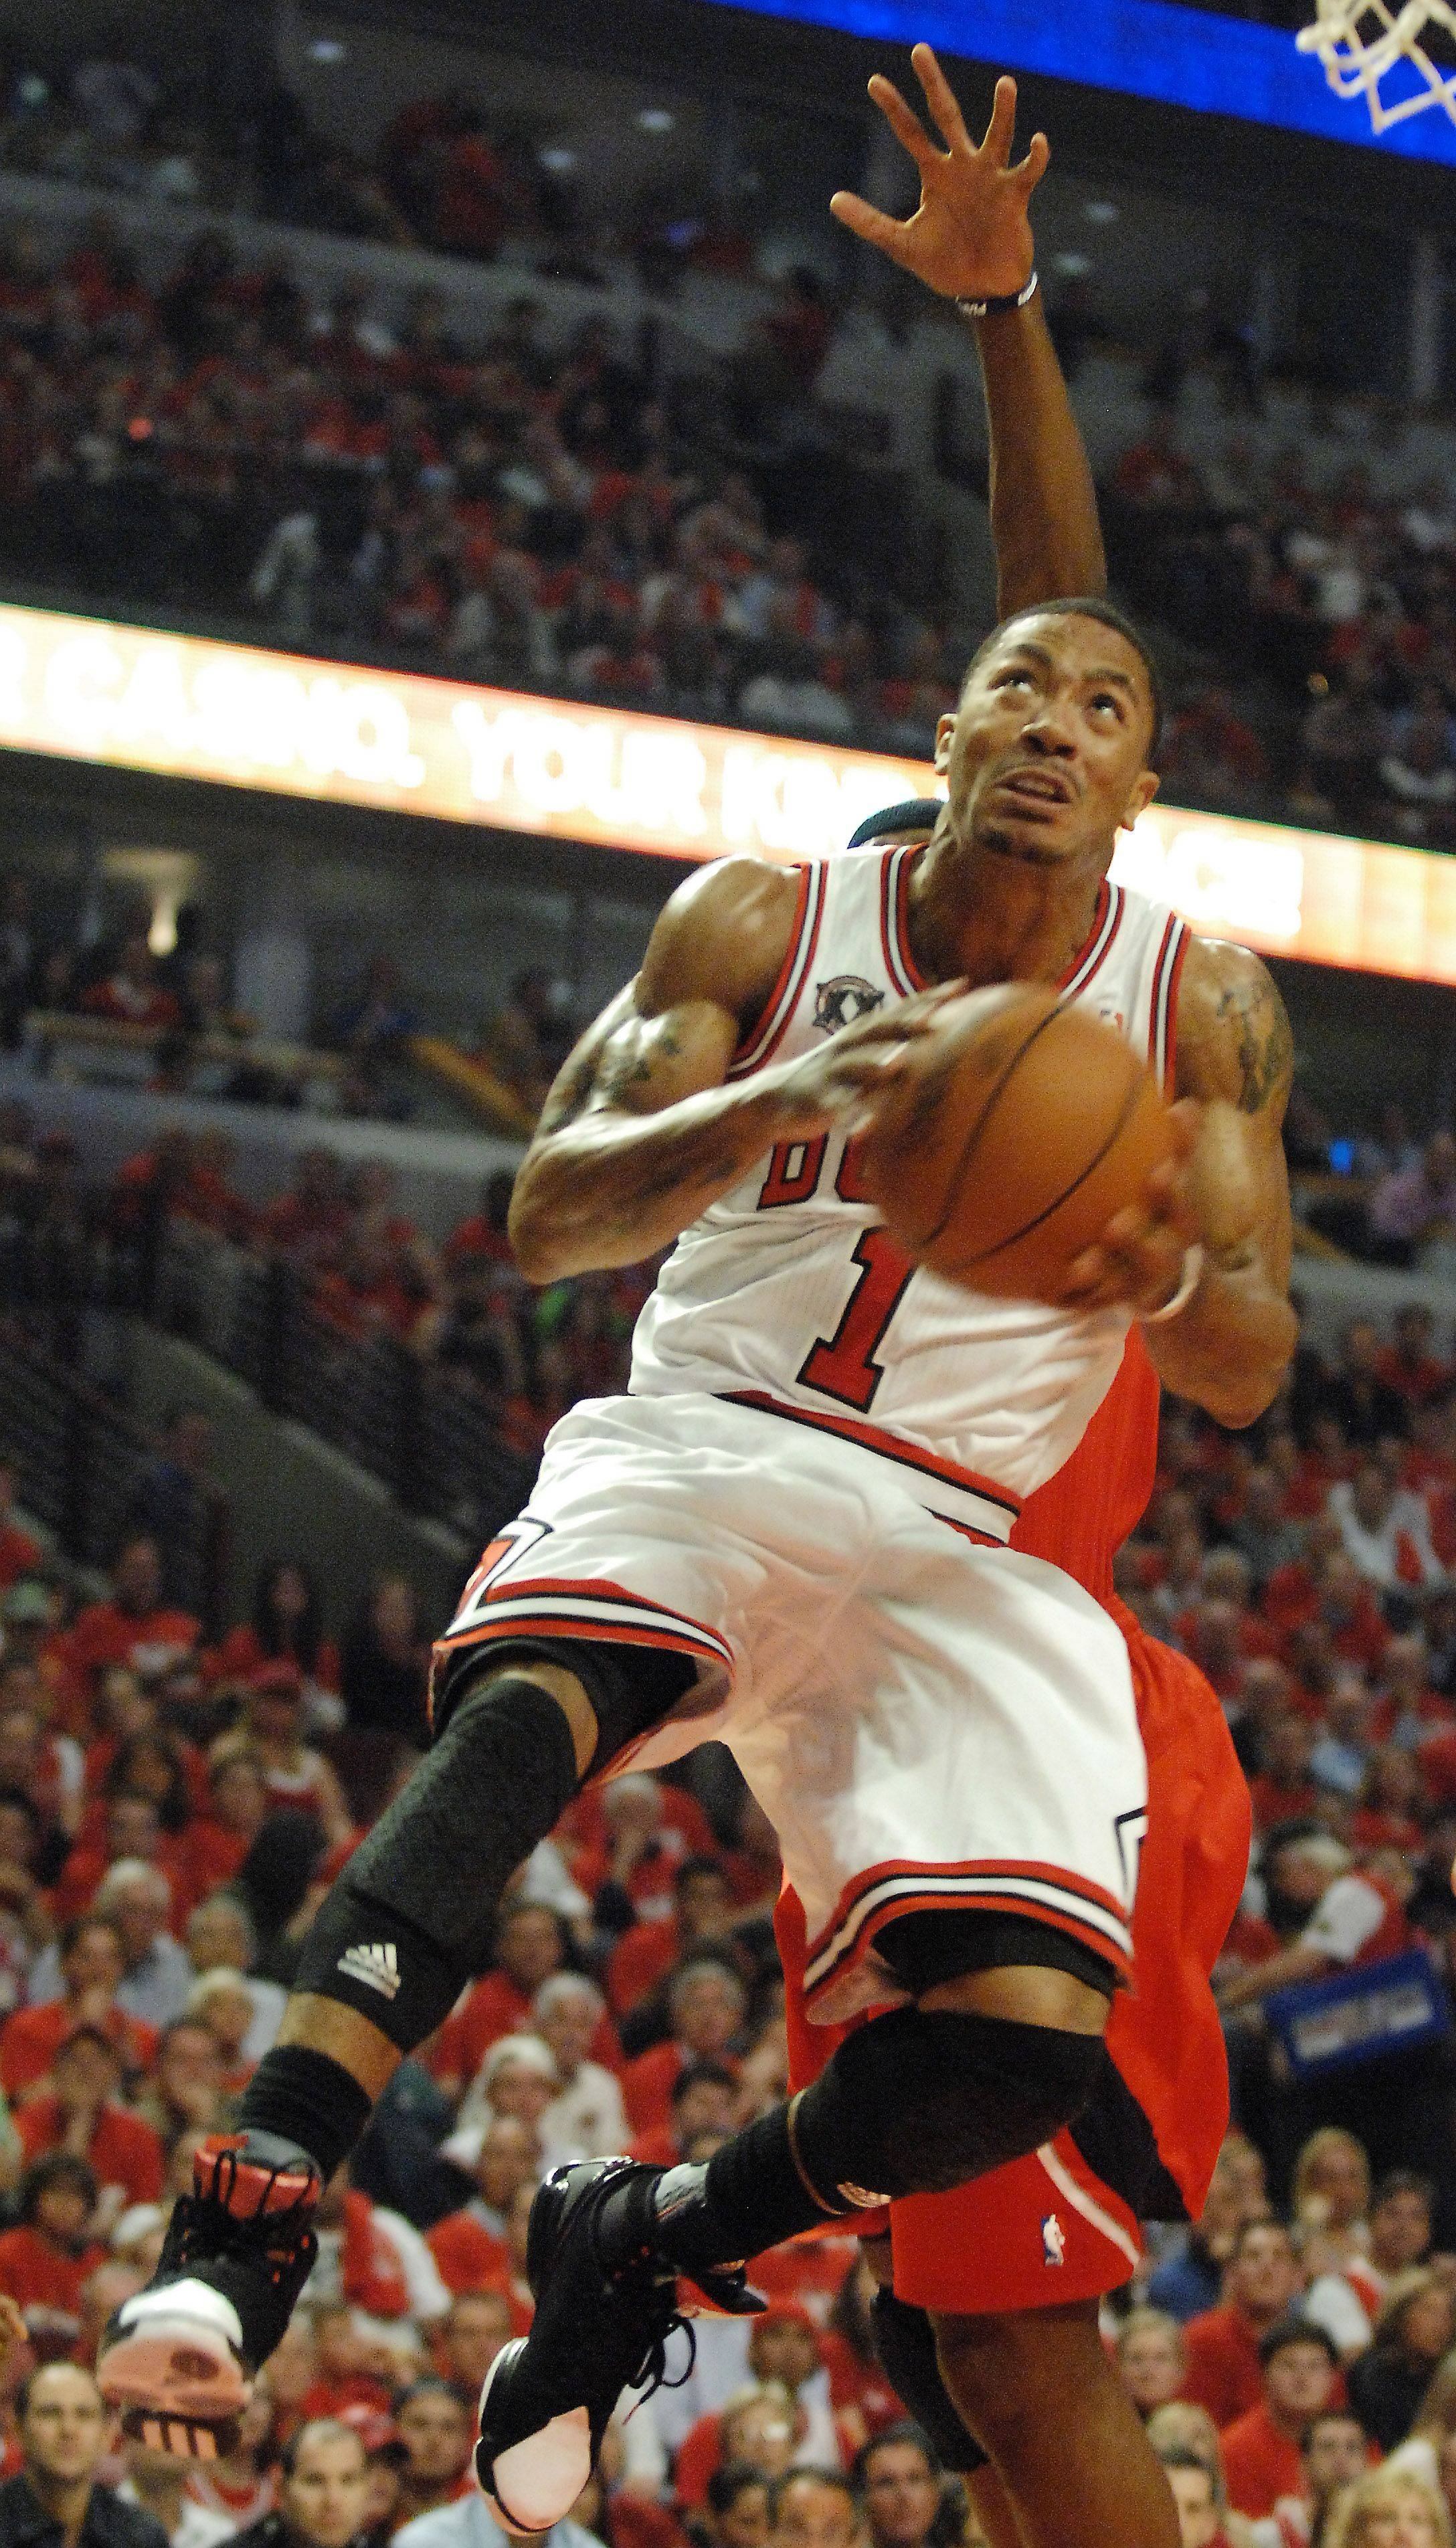 Bulls guard Derrick Rose drives to the hoop at the United Center in Chicago Tuesday.